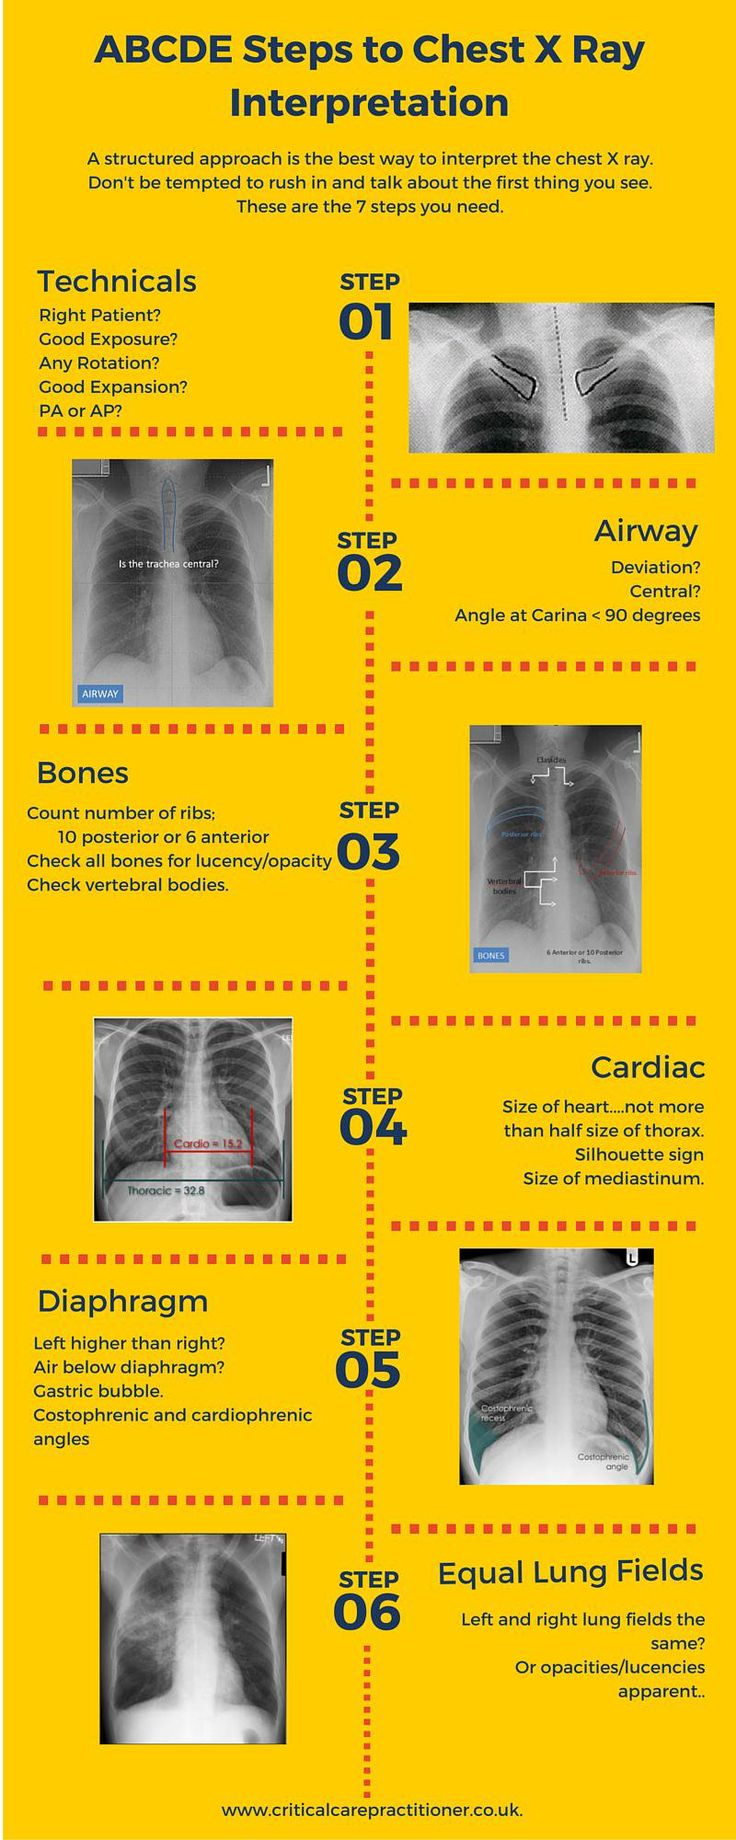 ABCDE Steps to Chest X-Ray Interpretation